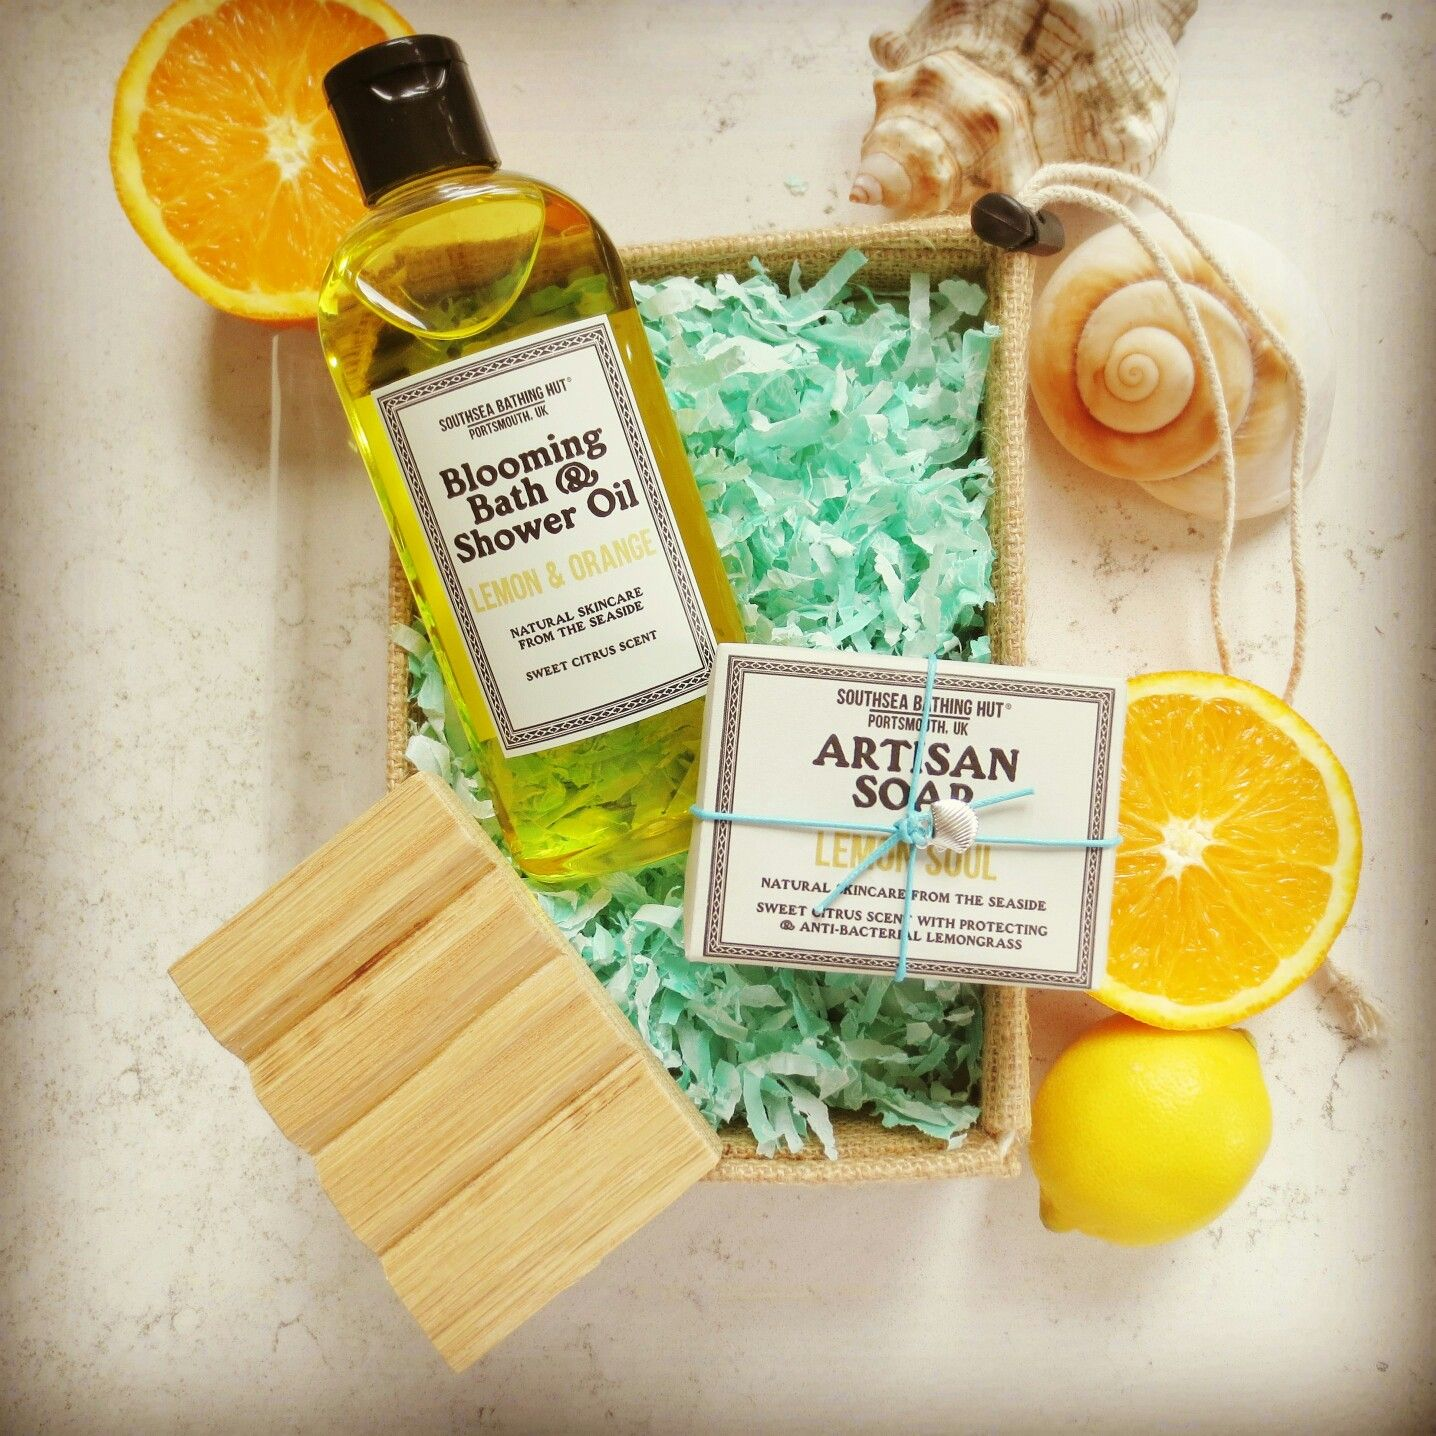 The perfect bathtime treat! Two of our top selling products in one gorgeous gift box. Lemon and Orange Blooming Bath & Shower Oil with Lemon Soul Artisan Soap. Heavenly!